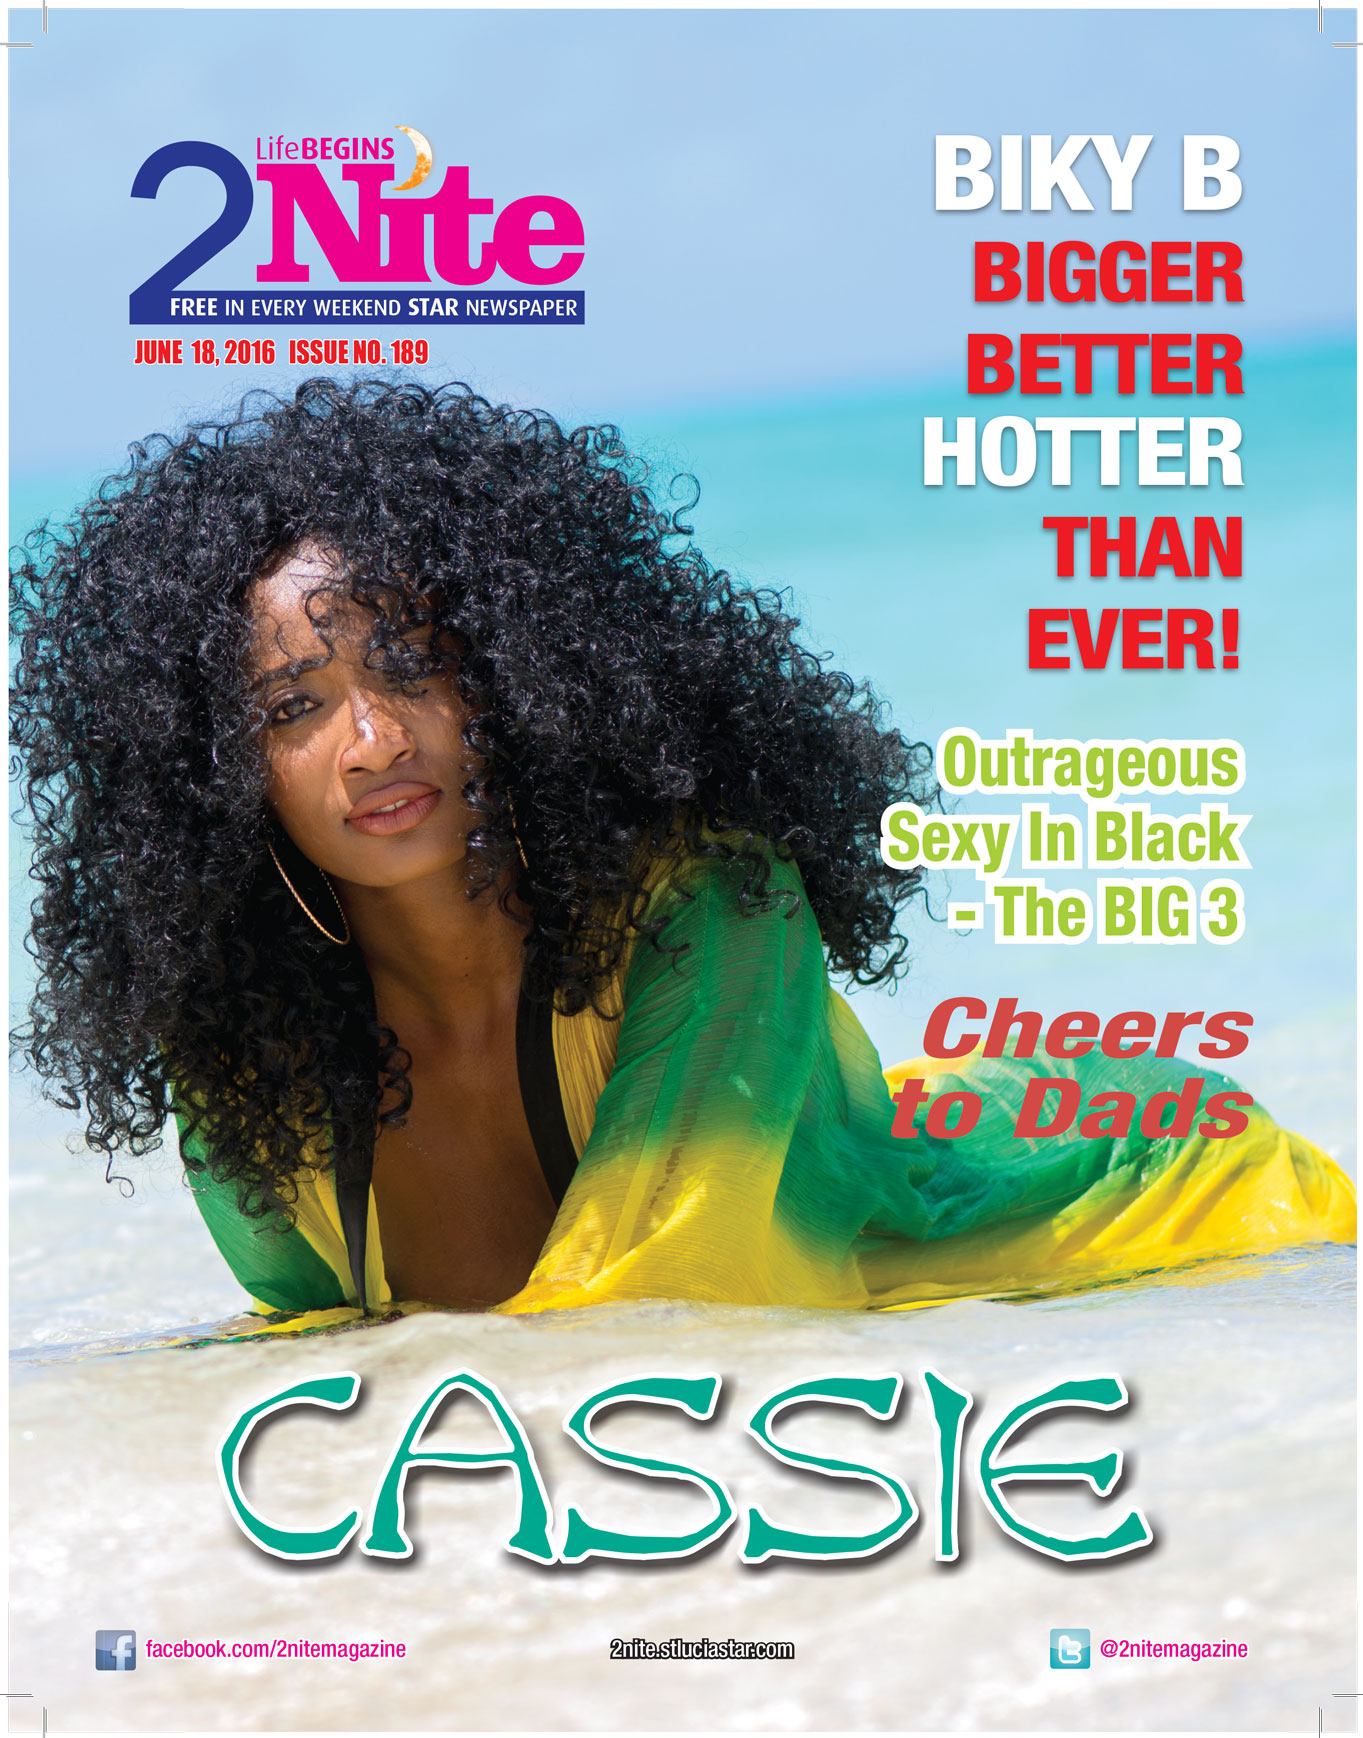 2Nite Magazine for Saturday June 18th, 2016 ~ Issue no. 189